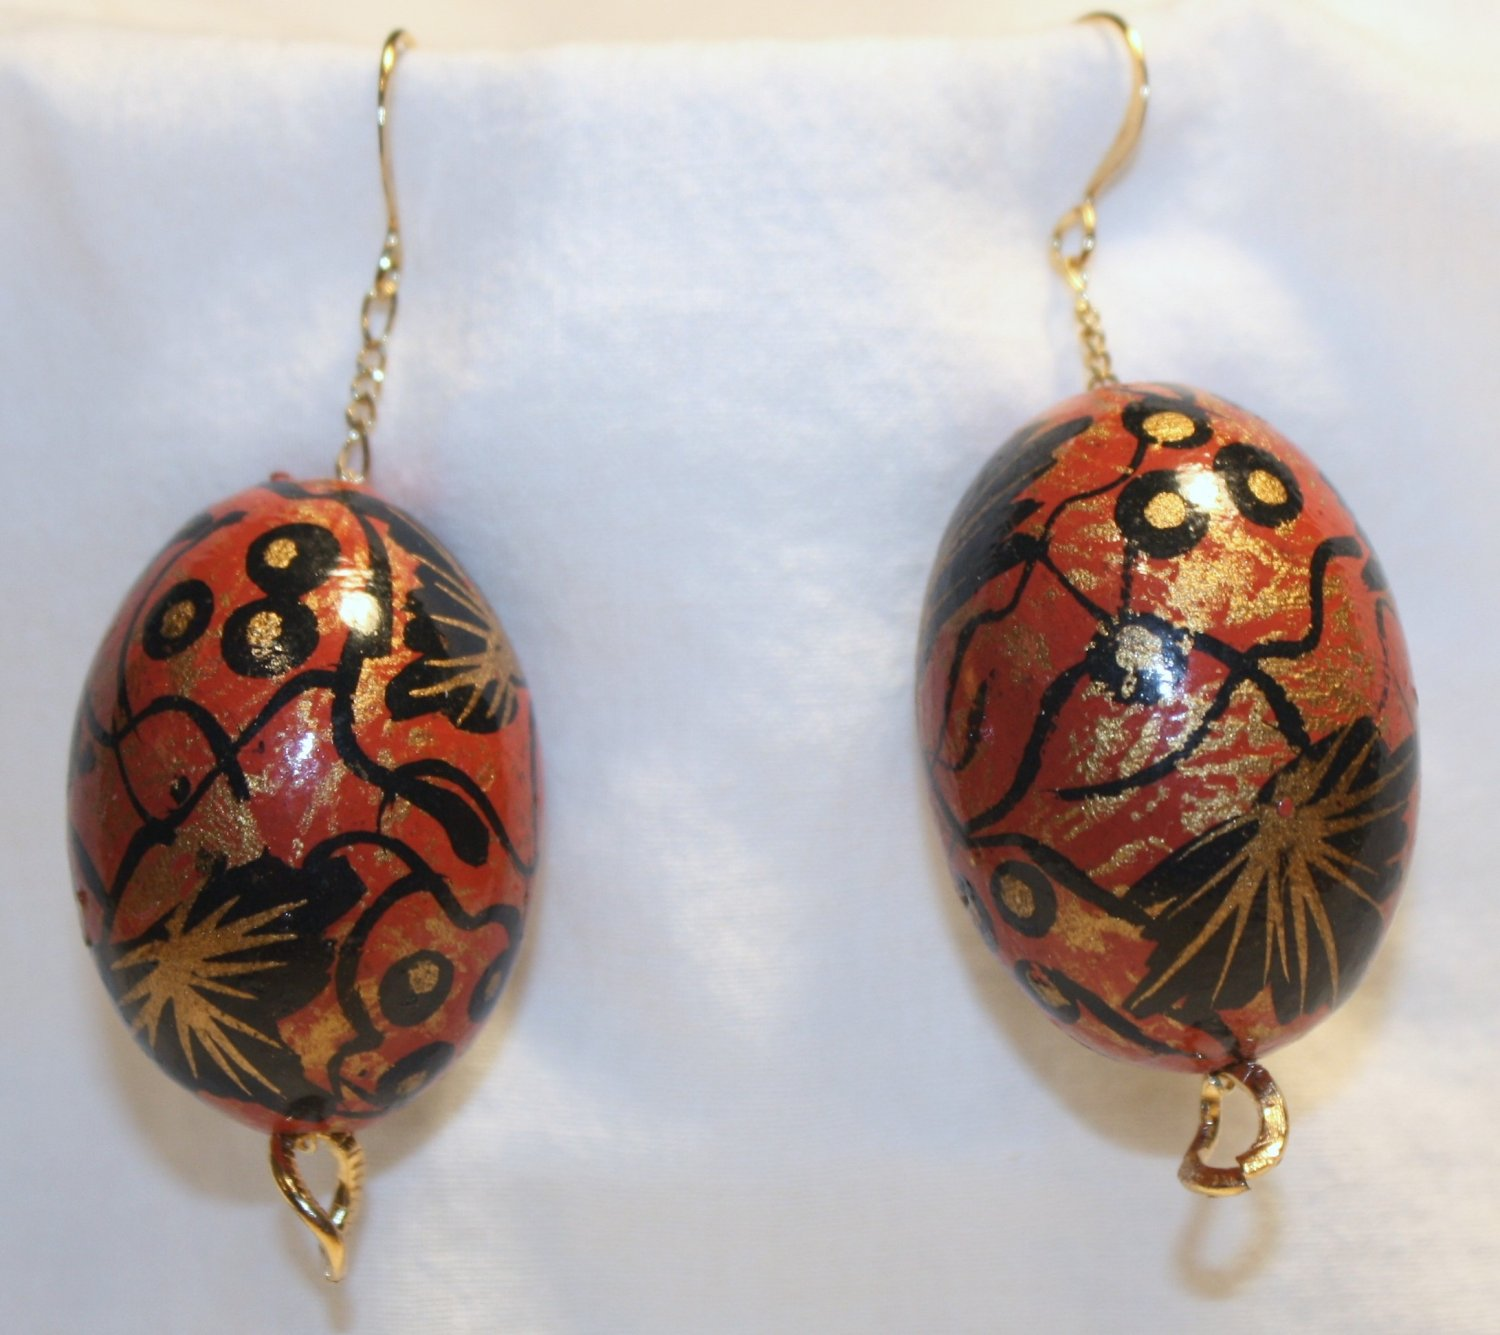 Painted Bead N' Chain Earrings - Item #E253